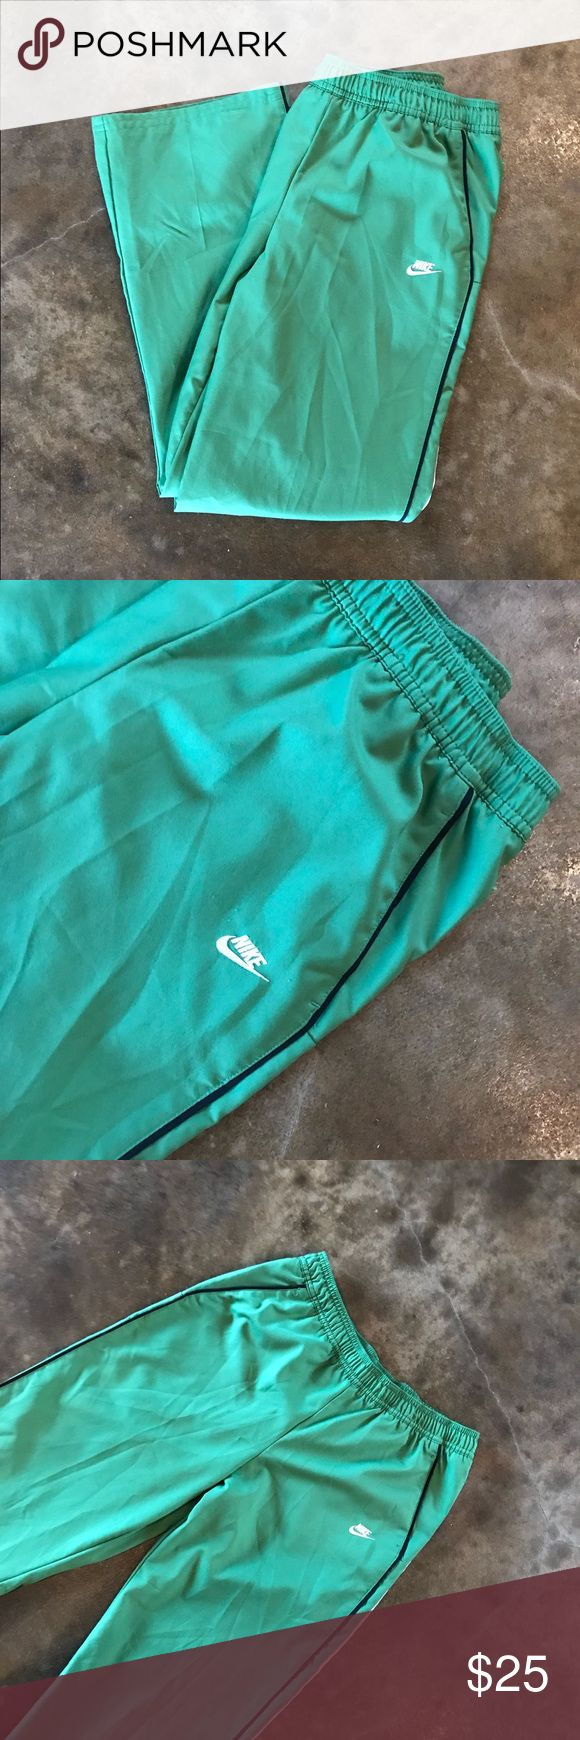 Vintage 90's Nike Original Green Track Pants S Maybe worn once! A vintage staple! Has slits (factory made) at the bottoms to fit over shoes. 20% off all bundles & I ship within 24 hours!  Nike Pants Track Pants & Joggers